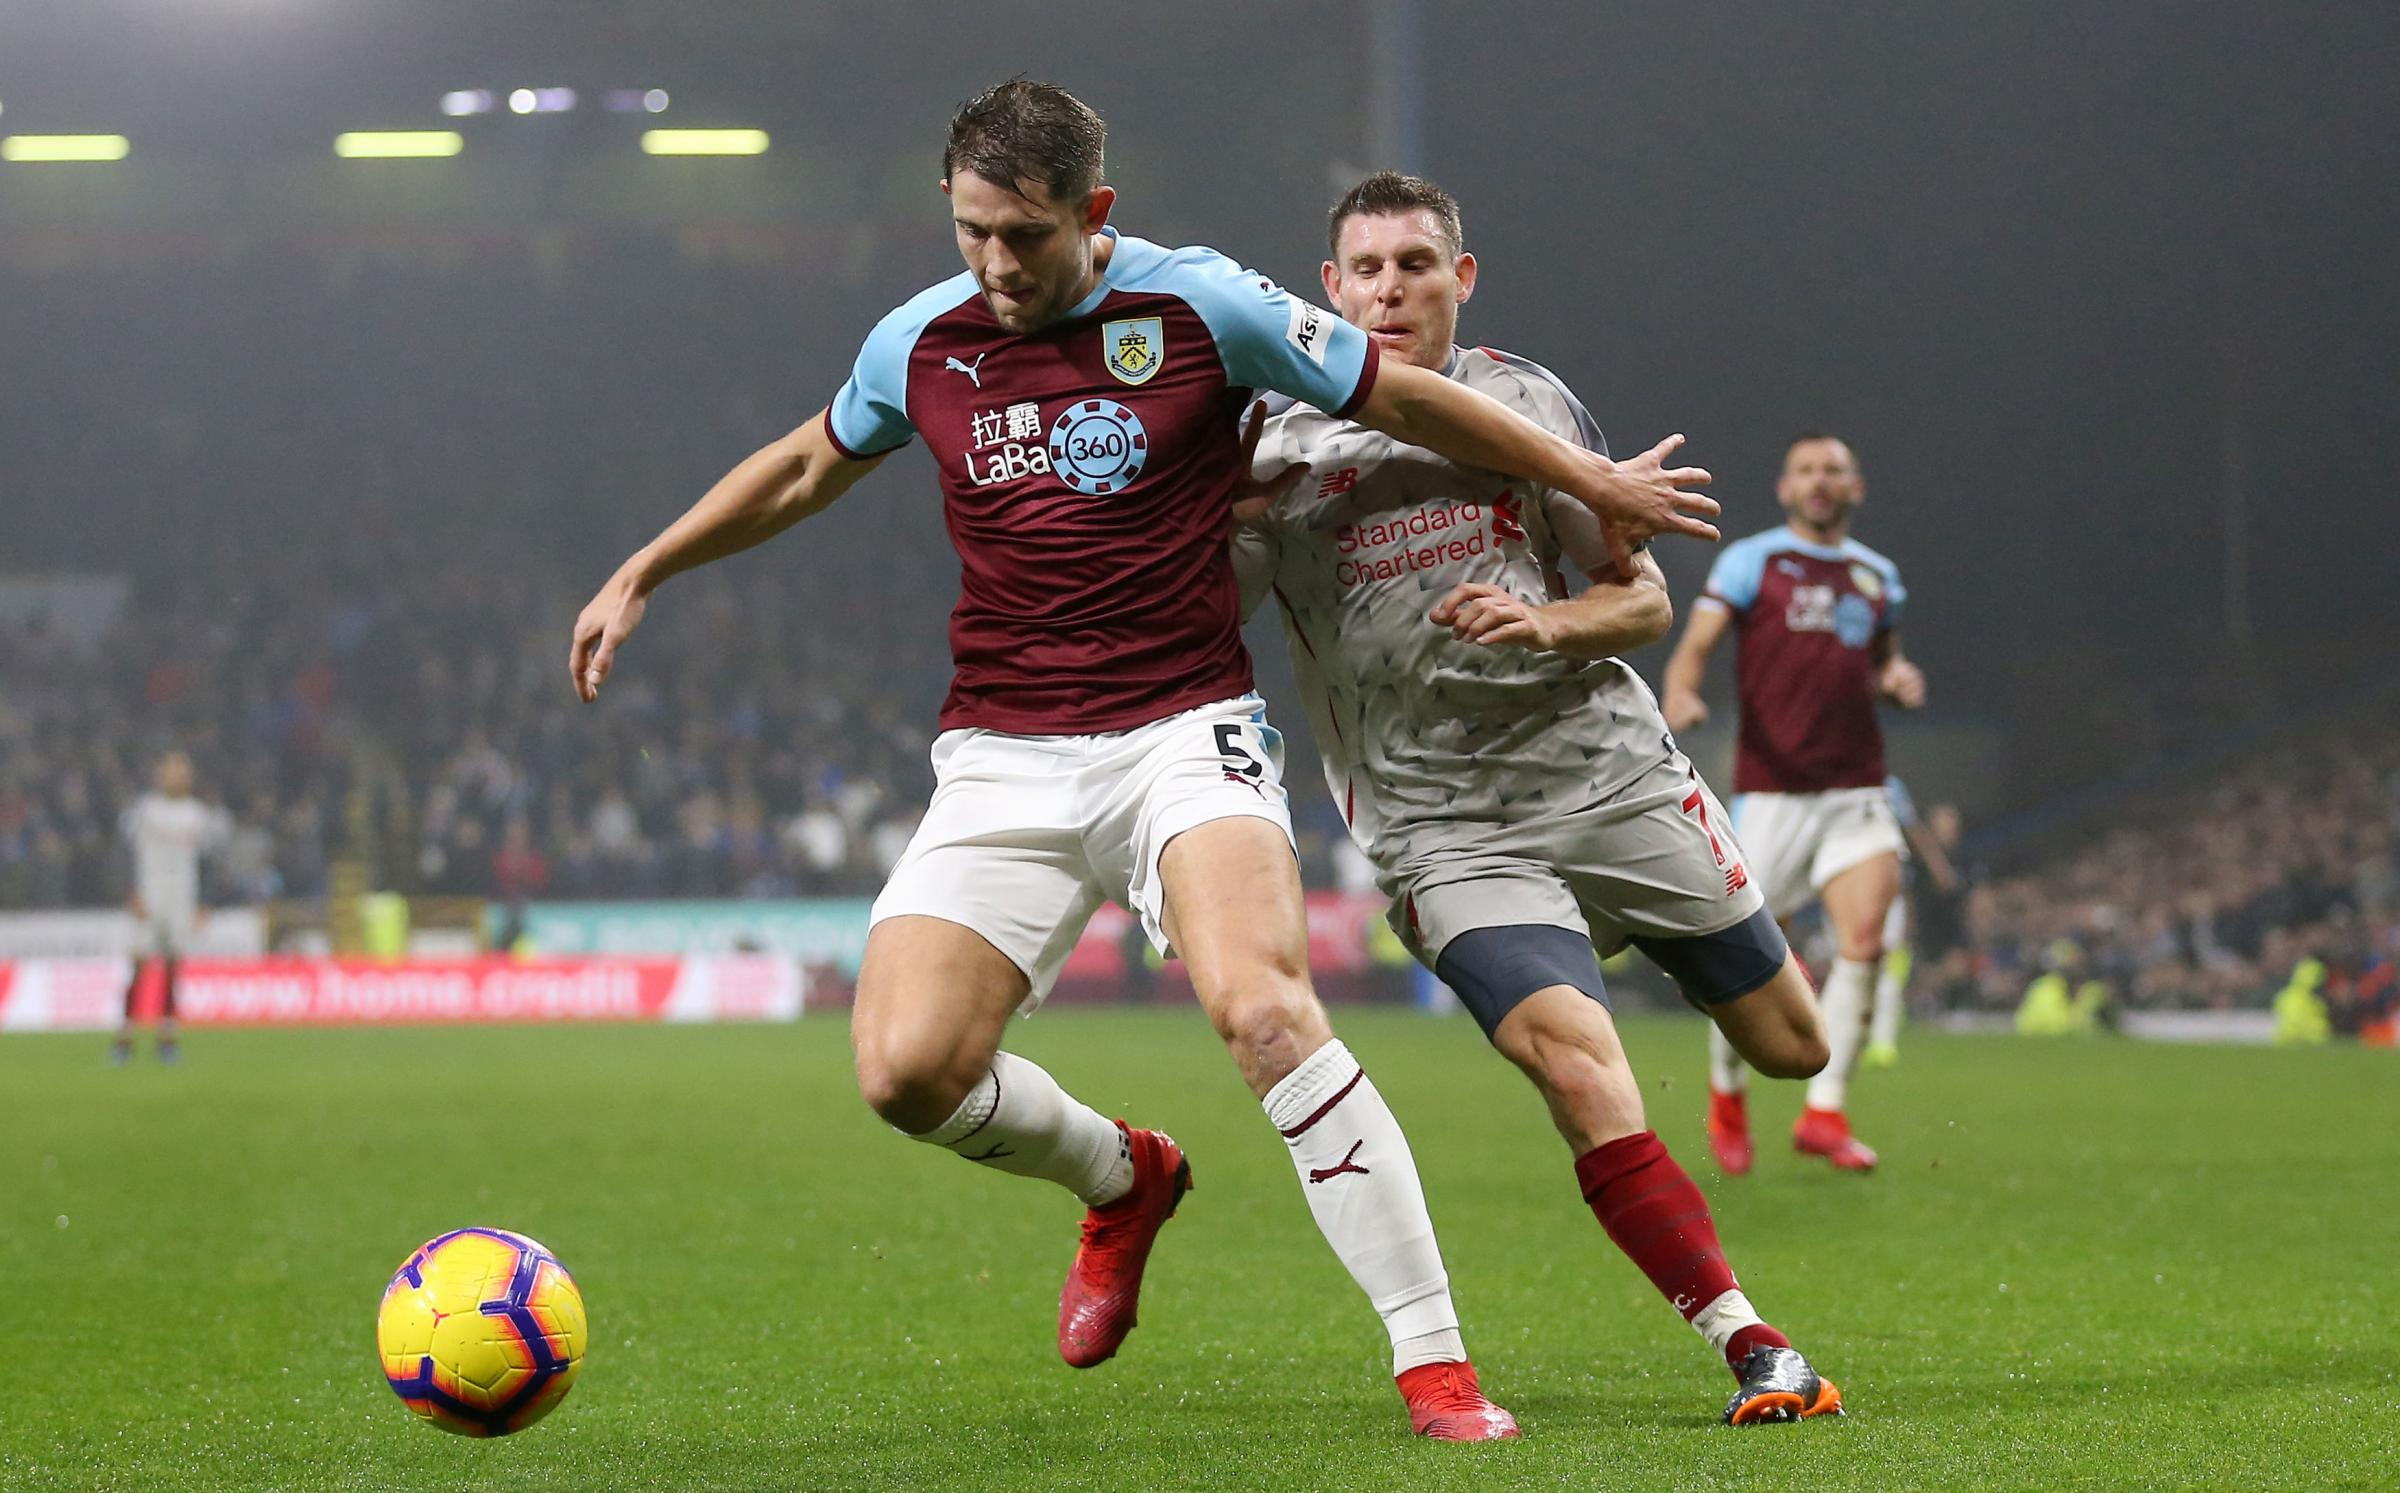 Burnley's James Tarkowski (left) and Liverpool's James Milner battle for the ball  during the Premier League match at Turf Moor, Burnley. PRESS ASSOCIATION Photo. Picture date: Wednesday December 5, 2018. See PA story SOCCER Burnley. Photo credit